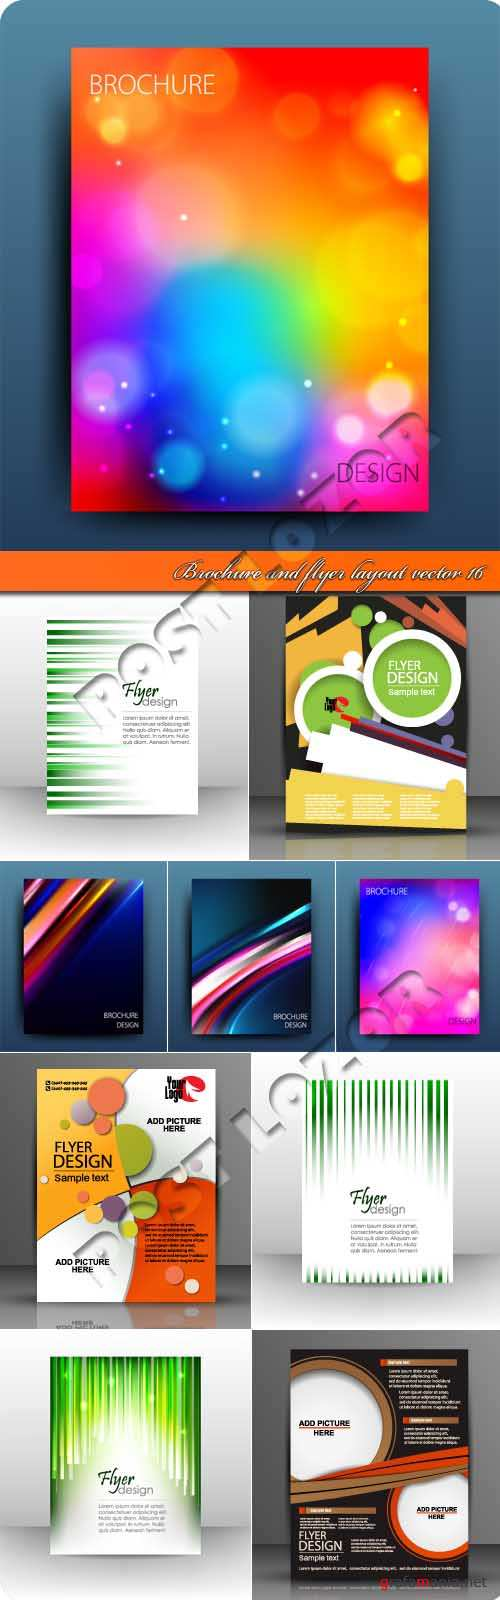 Брошюра и флаер 16 | Brochure and flyer layout vector 16